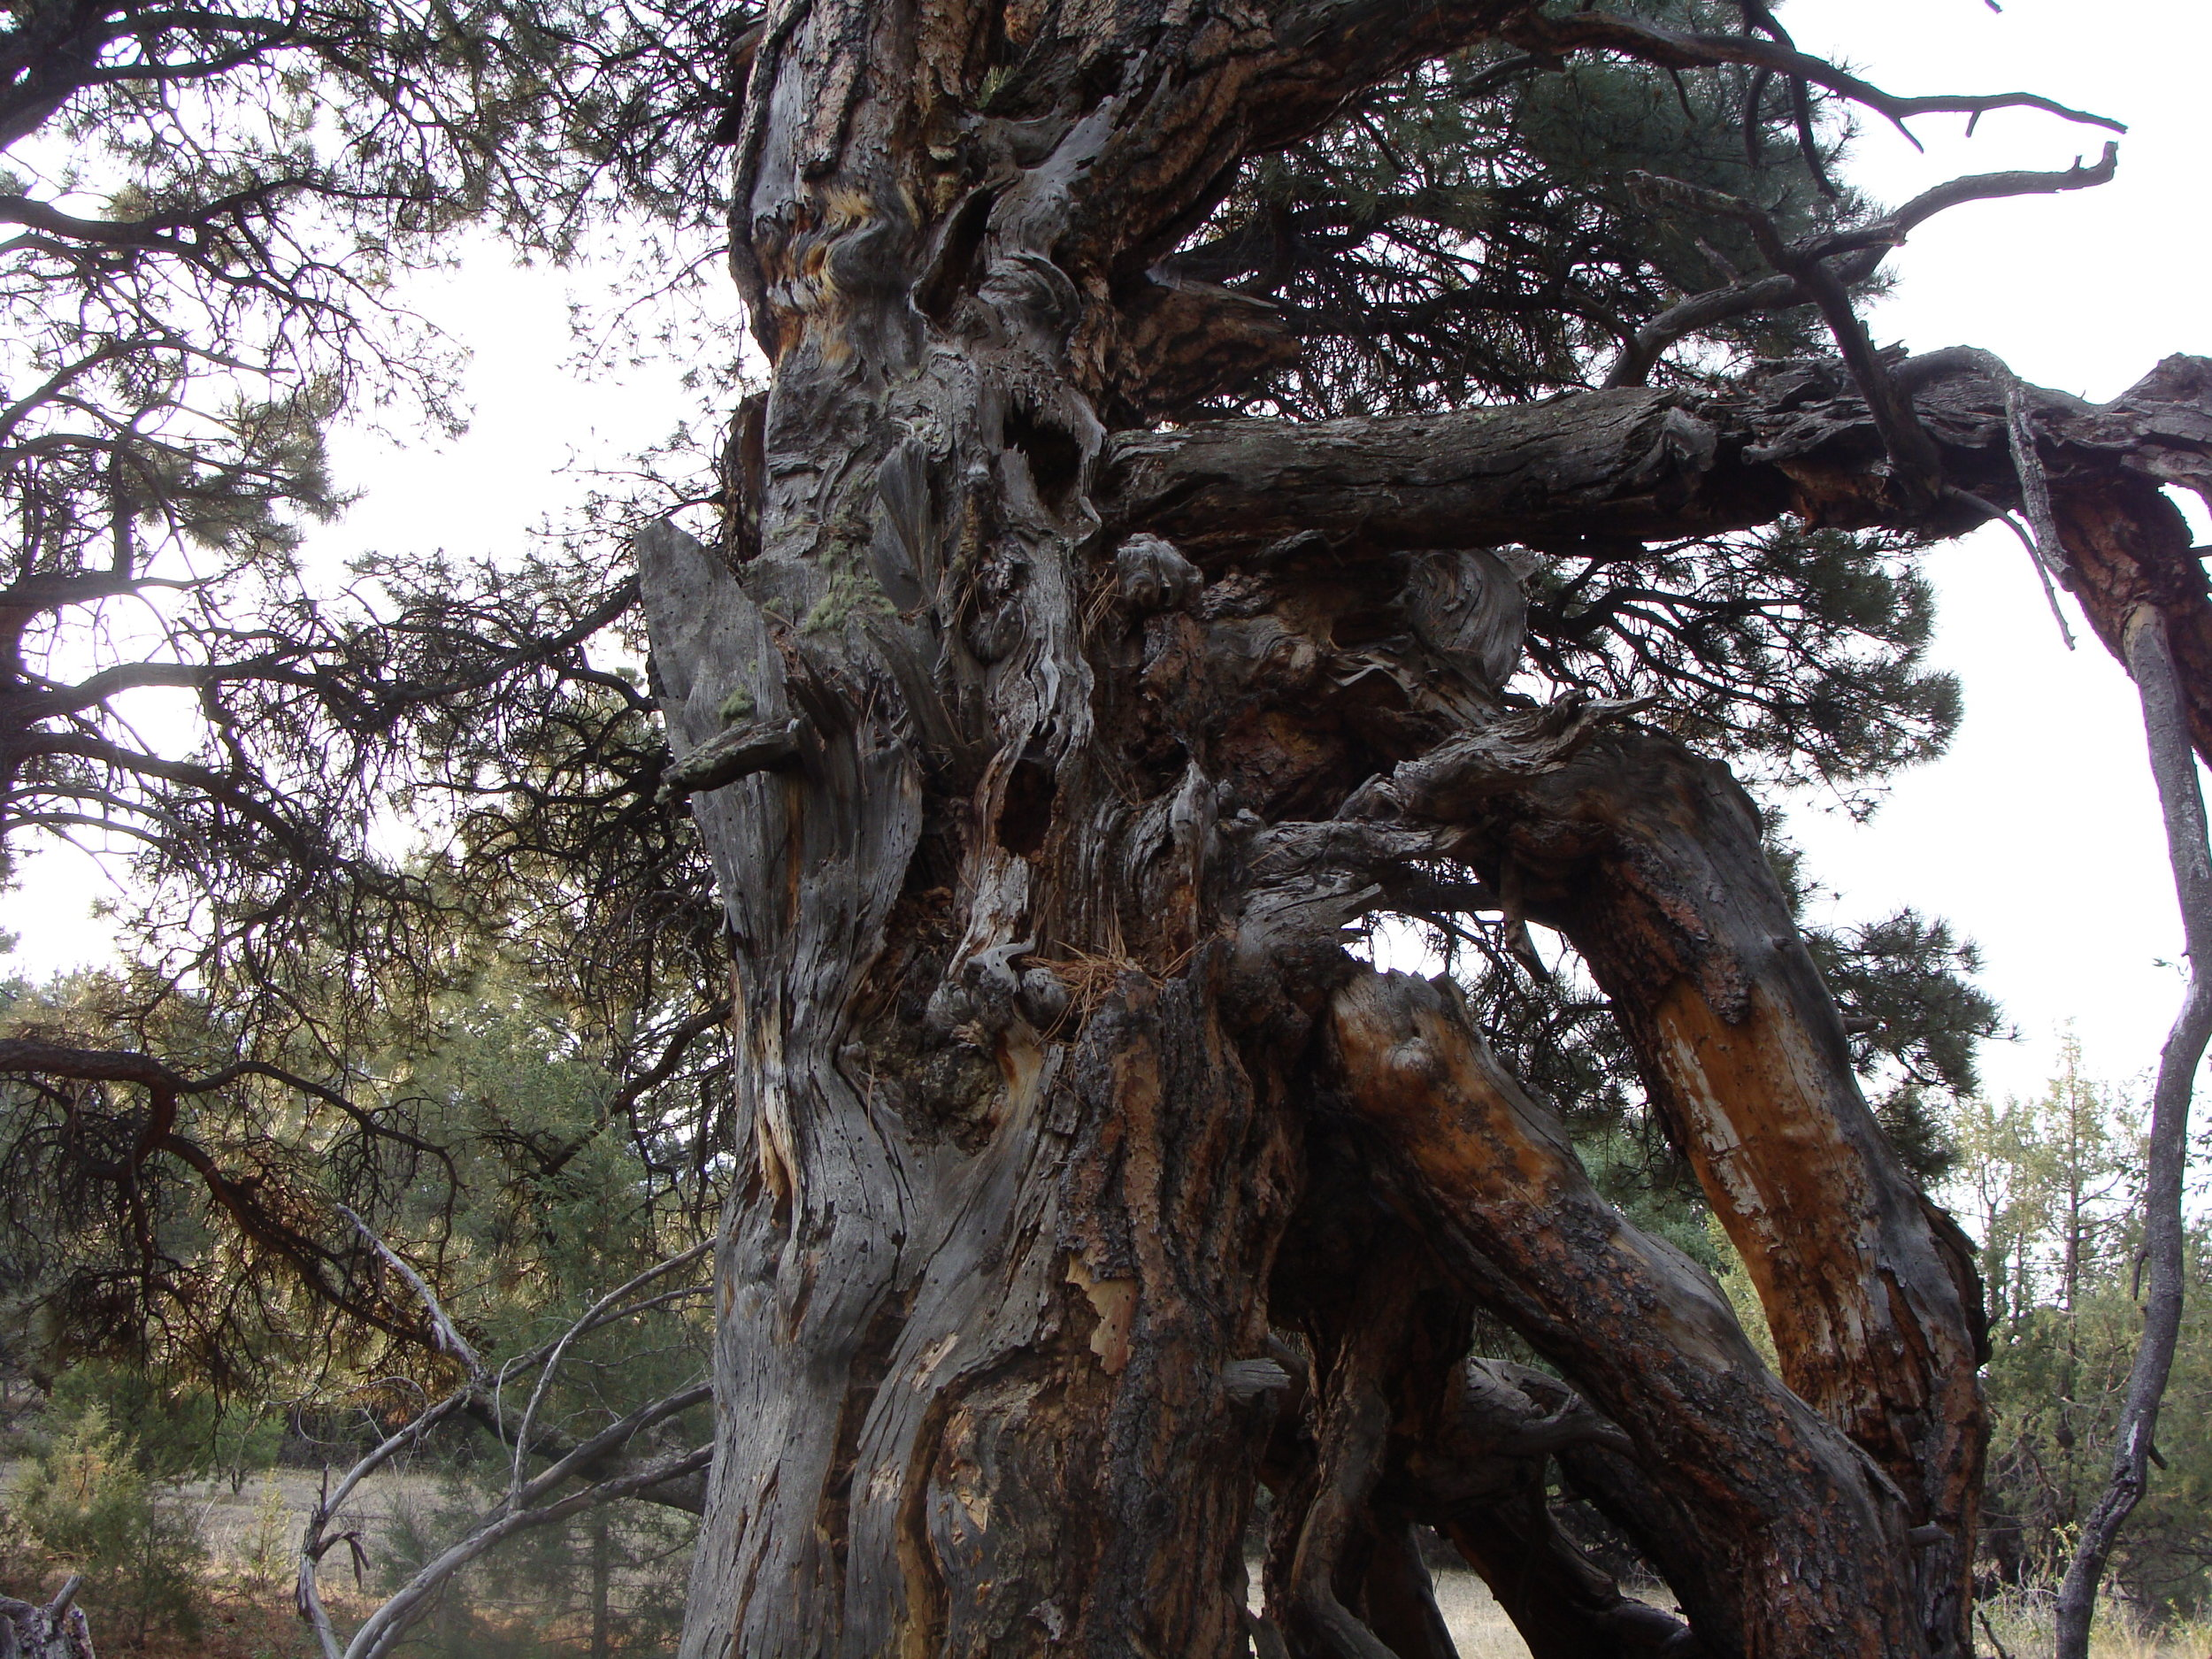 The Fierce Softness of Grandmother Pine lives on.